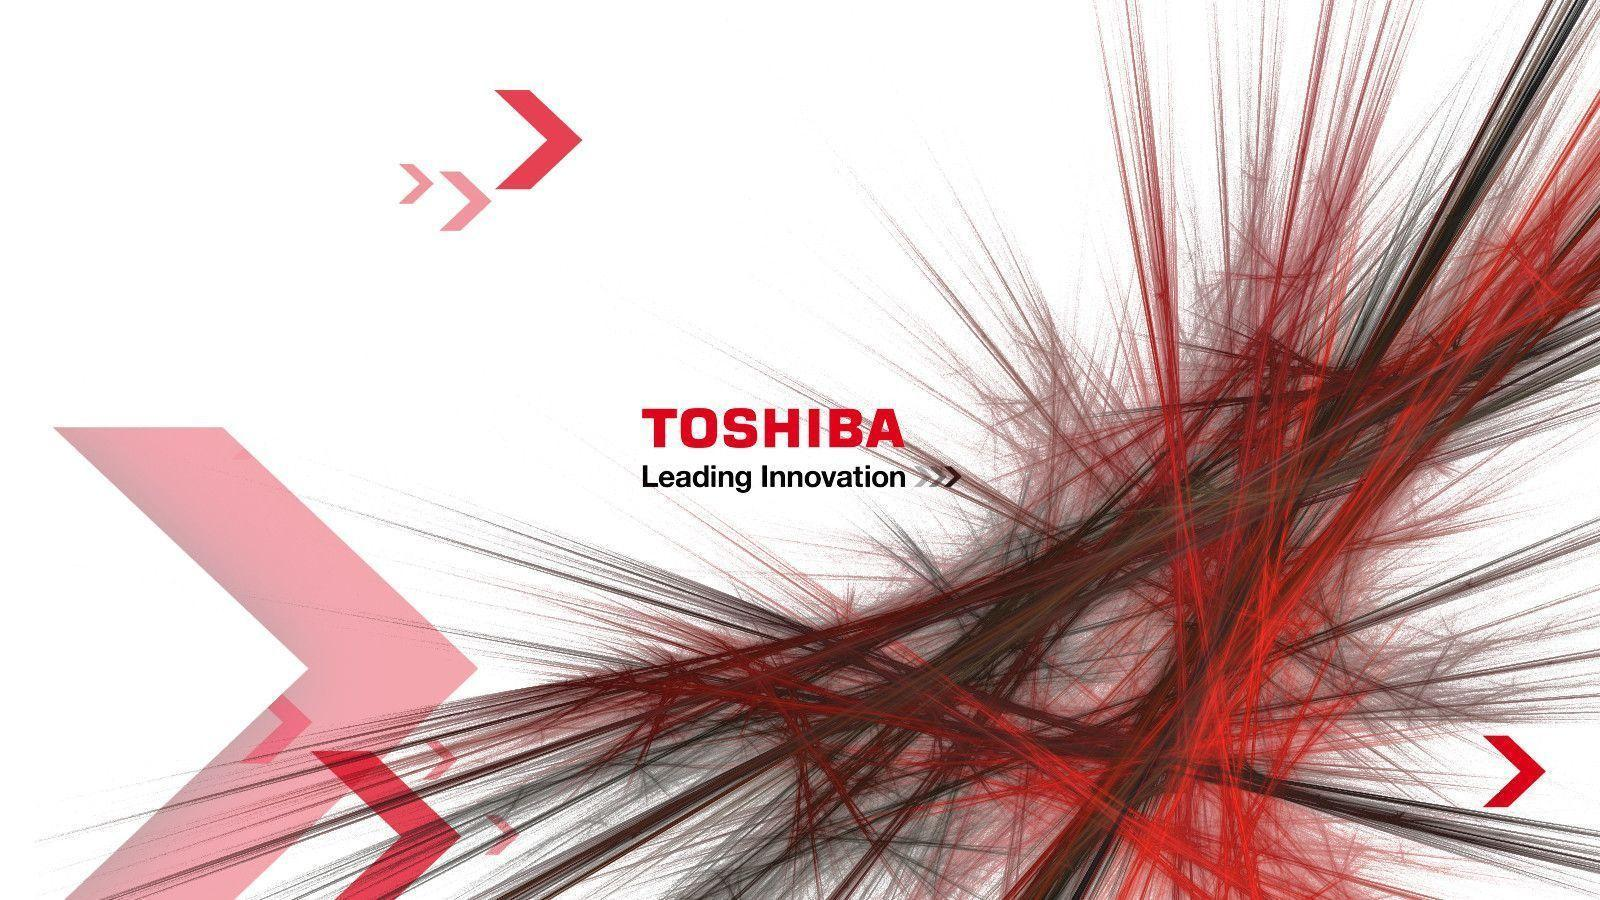 Toshiba desktop backgrounds wallpaper cave Innovation windows